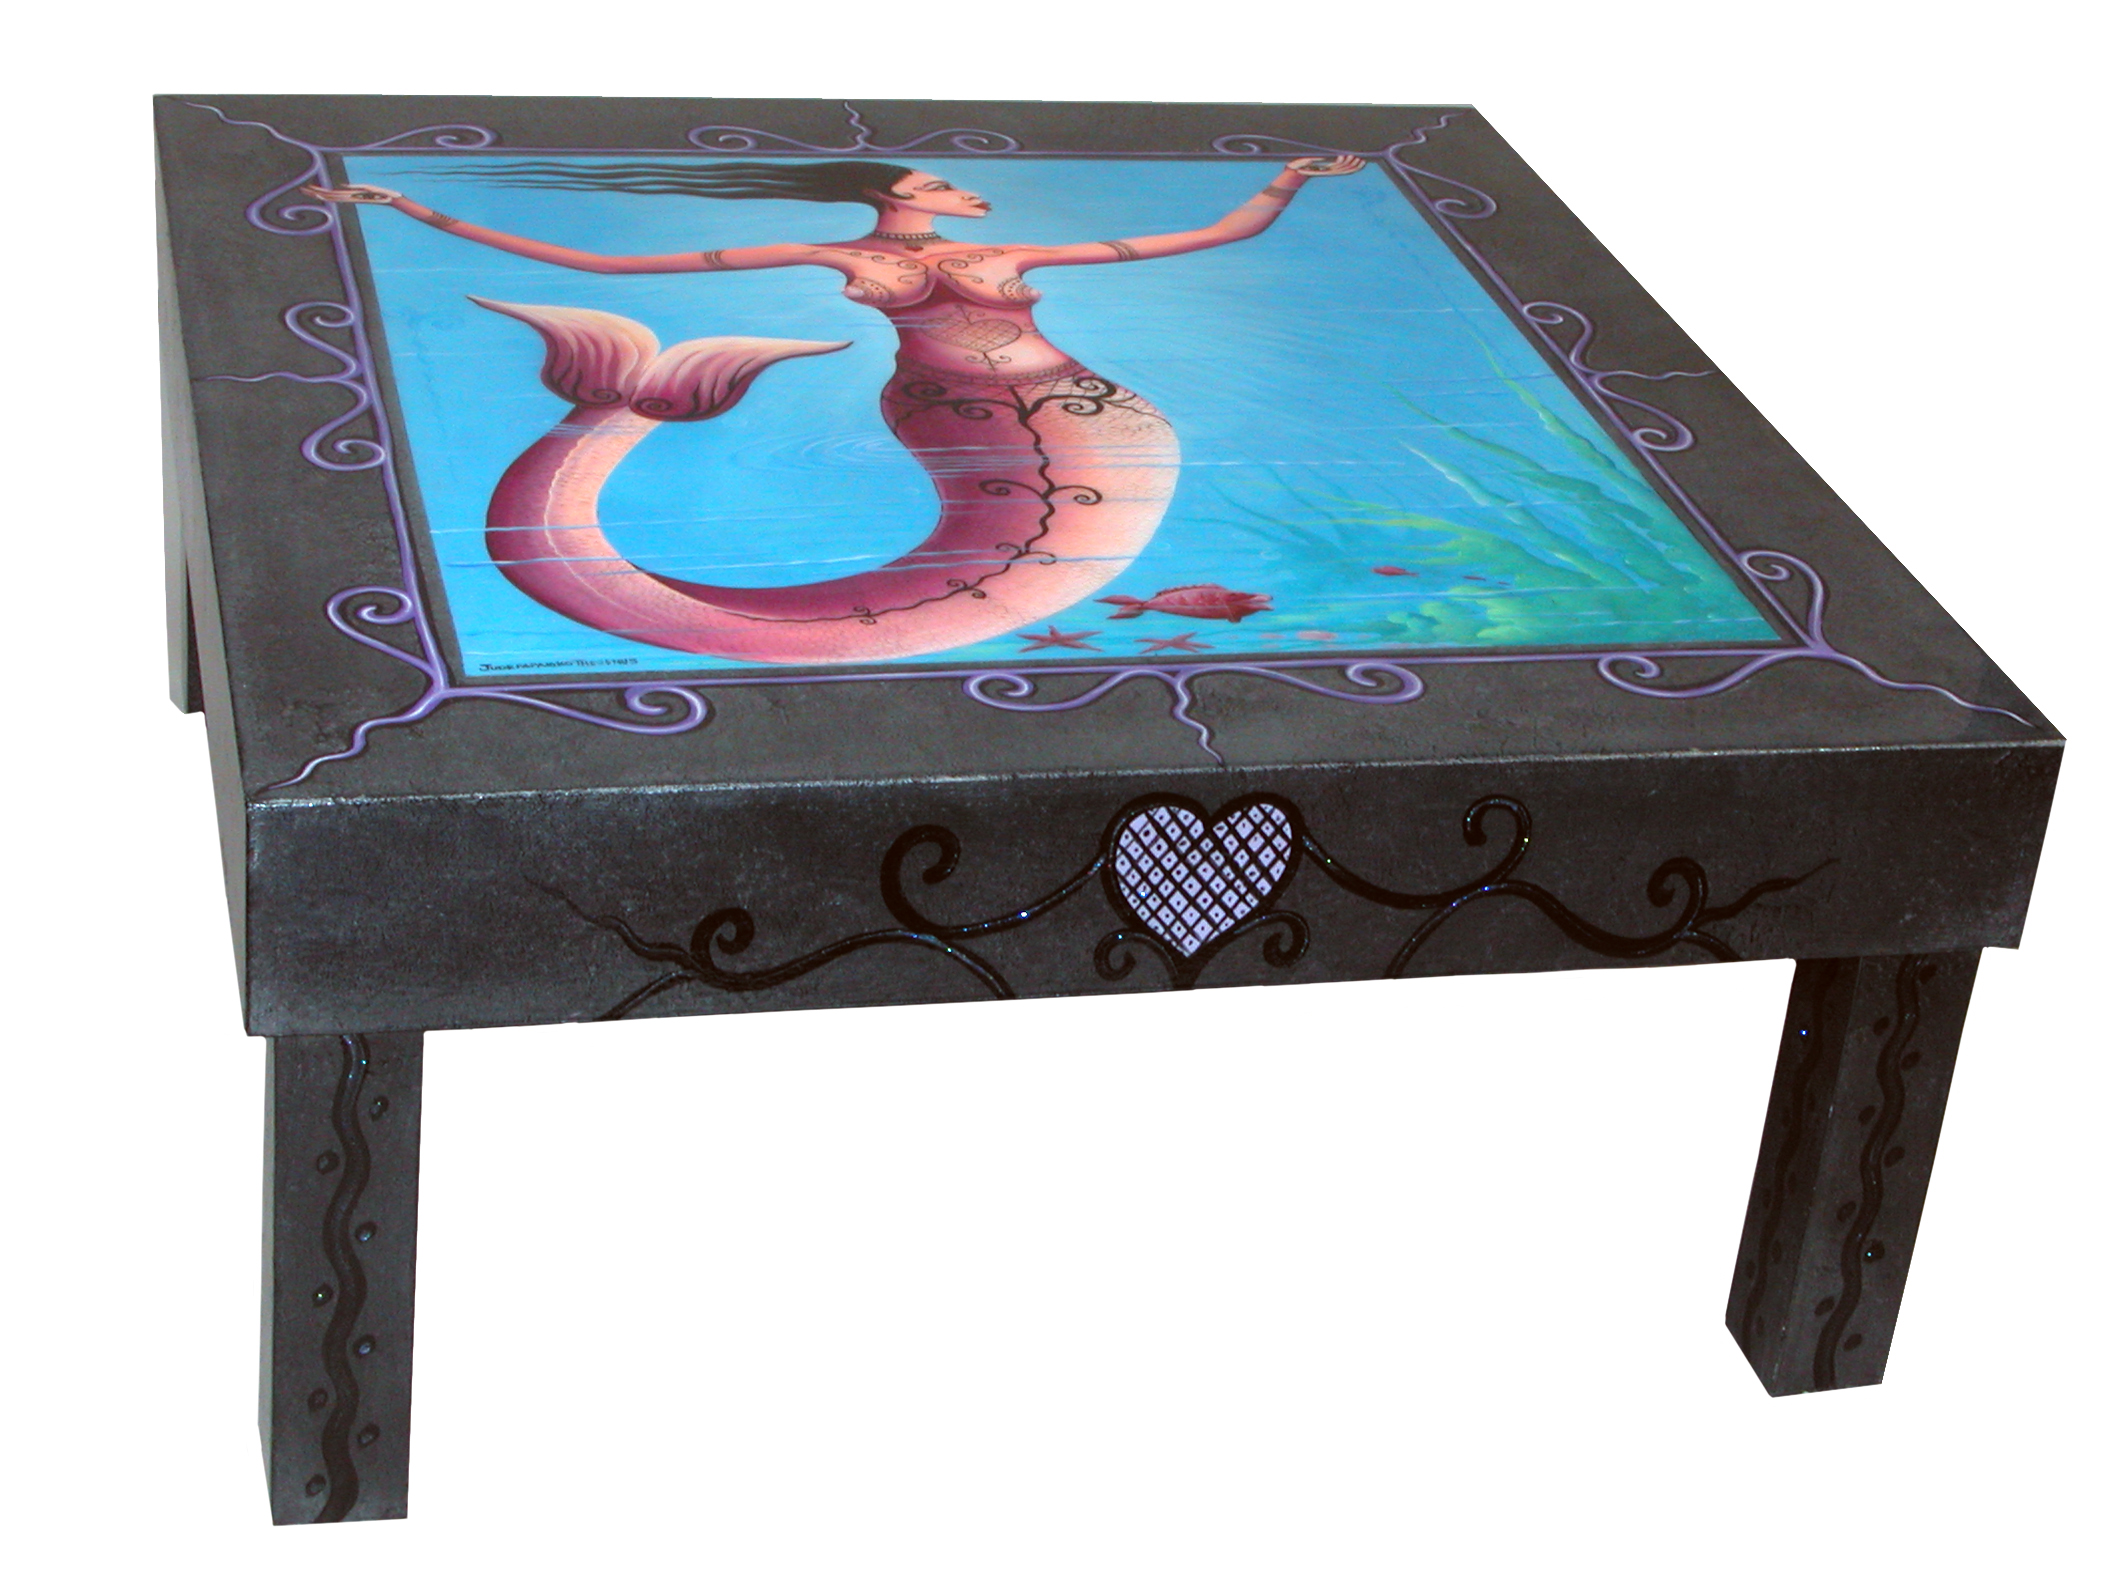 LA SIREN TABLE